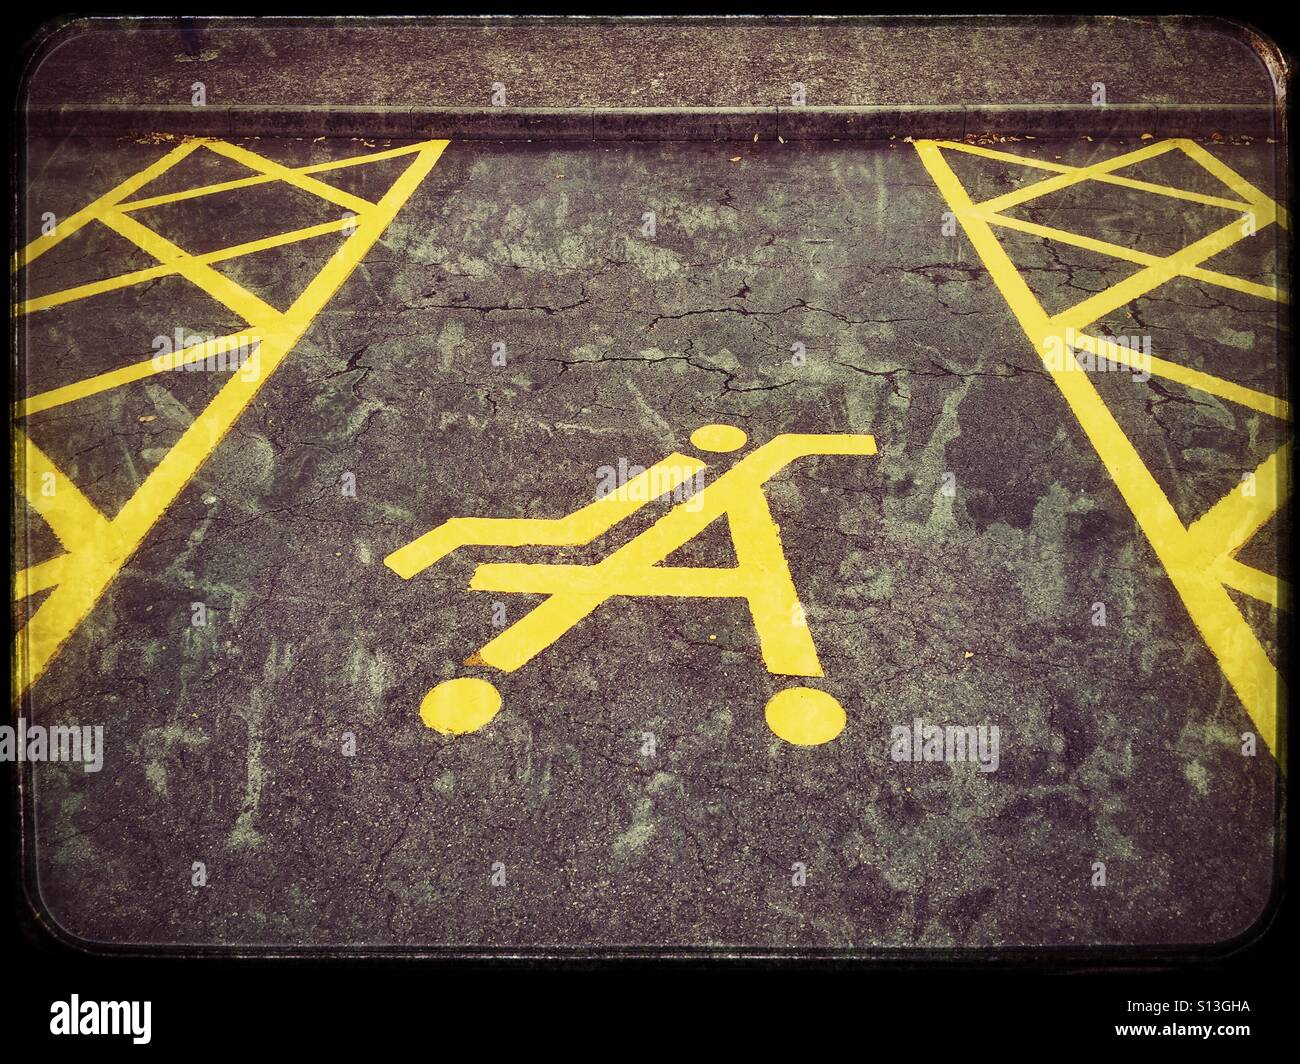 A parking space reserved for people who travel by car & transport children. The symbol of a child sitting in - Stock Image